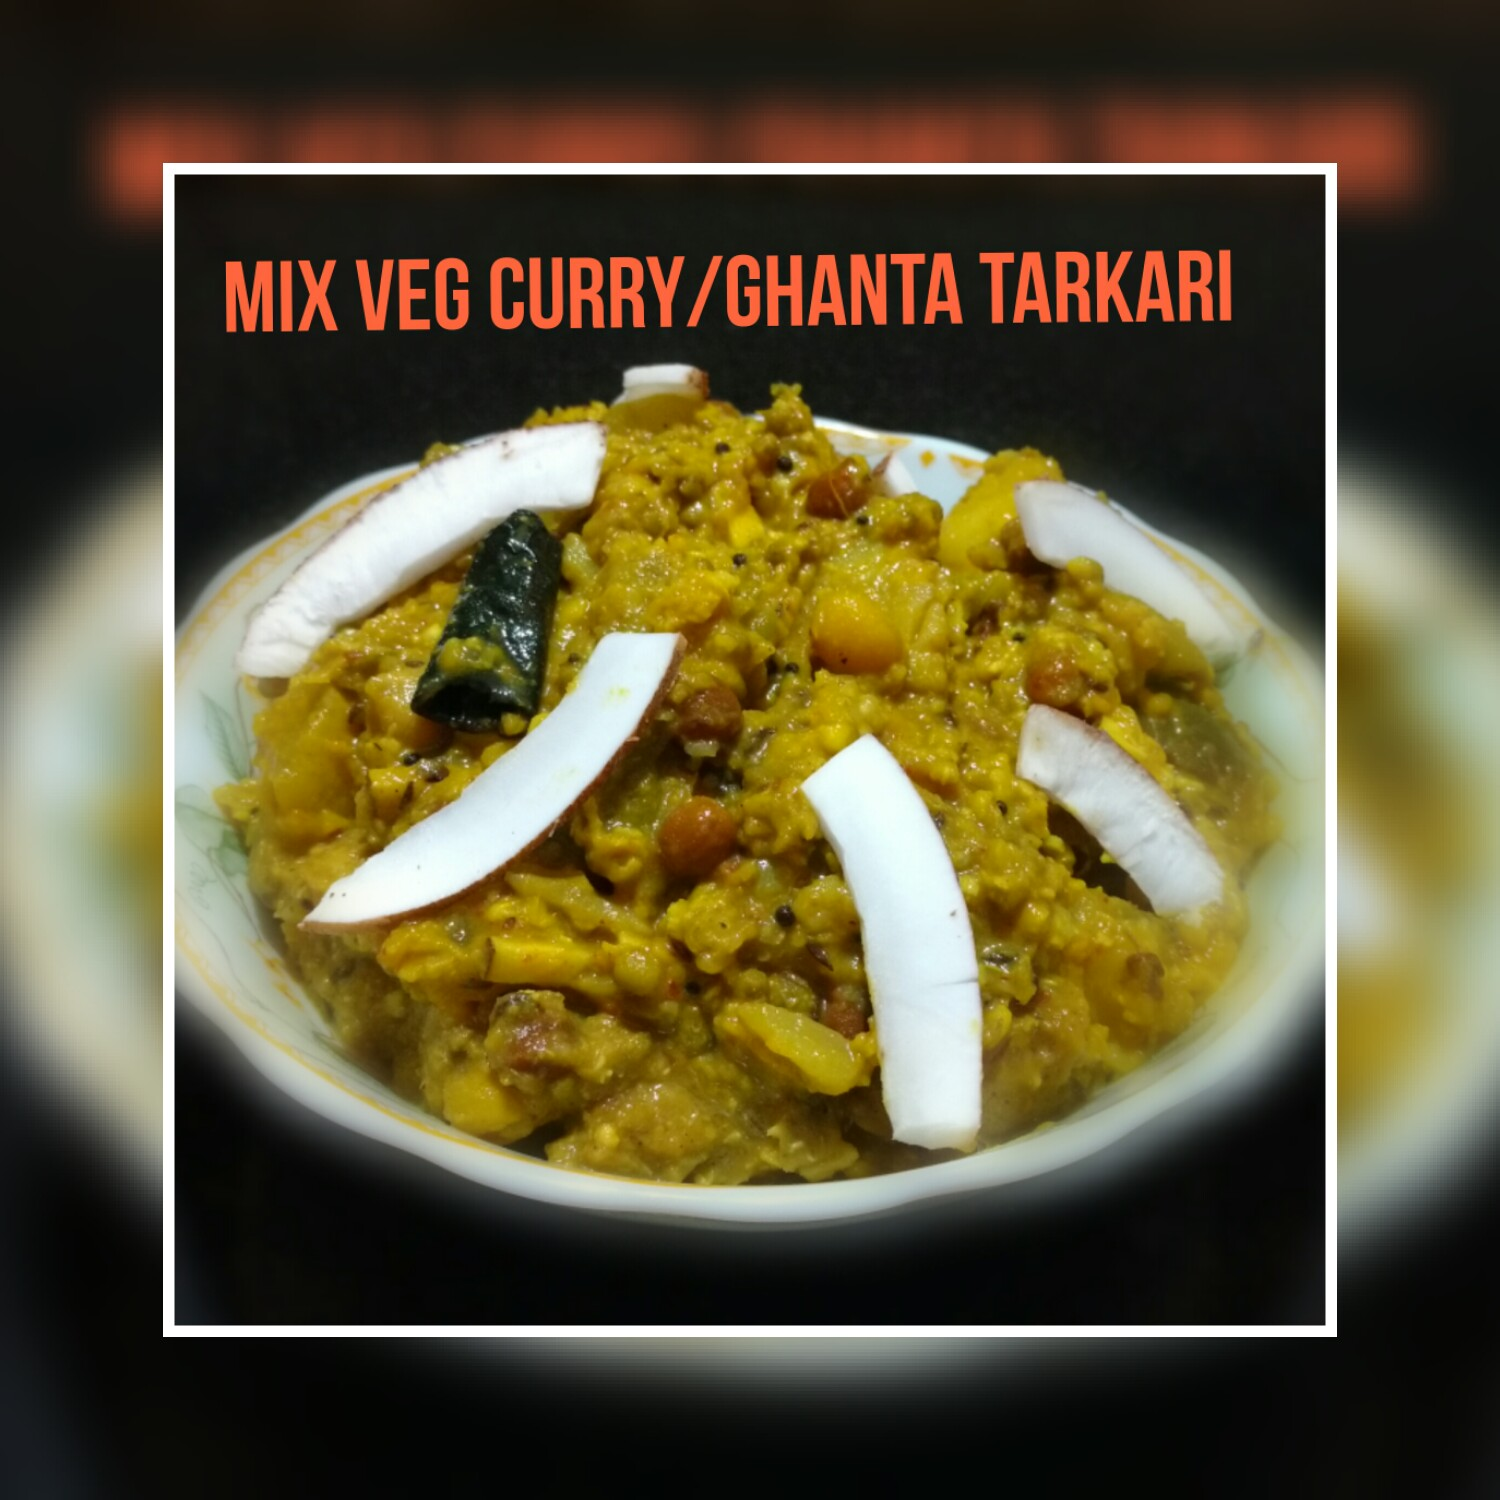 Chinus kitchen corner mixed vegetable curryoriya ghanta tarkari this recipe is odisha famous ghanta tarkari we need to cook all the vegetableswith soaked pulsespices with grated coconut and make a mix veg gravy forumfinder Choice Image